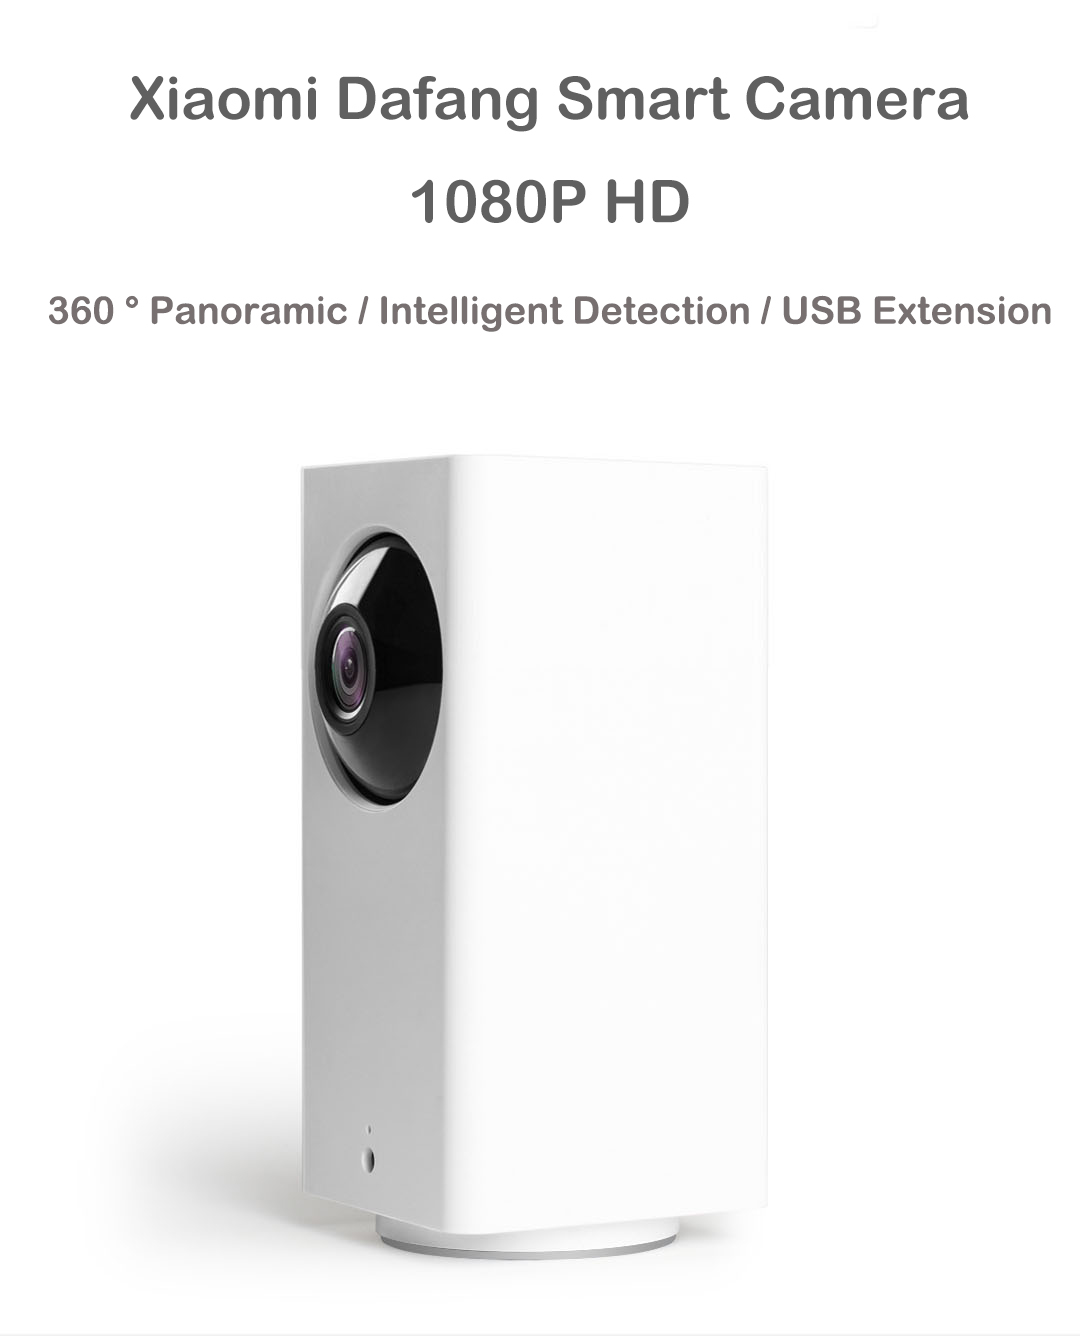 Original Xiaomi MIjia Dafang Smart Home 120 Degree 1080p HD Intelligent Security WIFI IP Camera Night Vision IR-cut Motion Detection Monitor